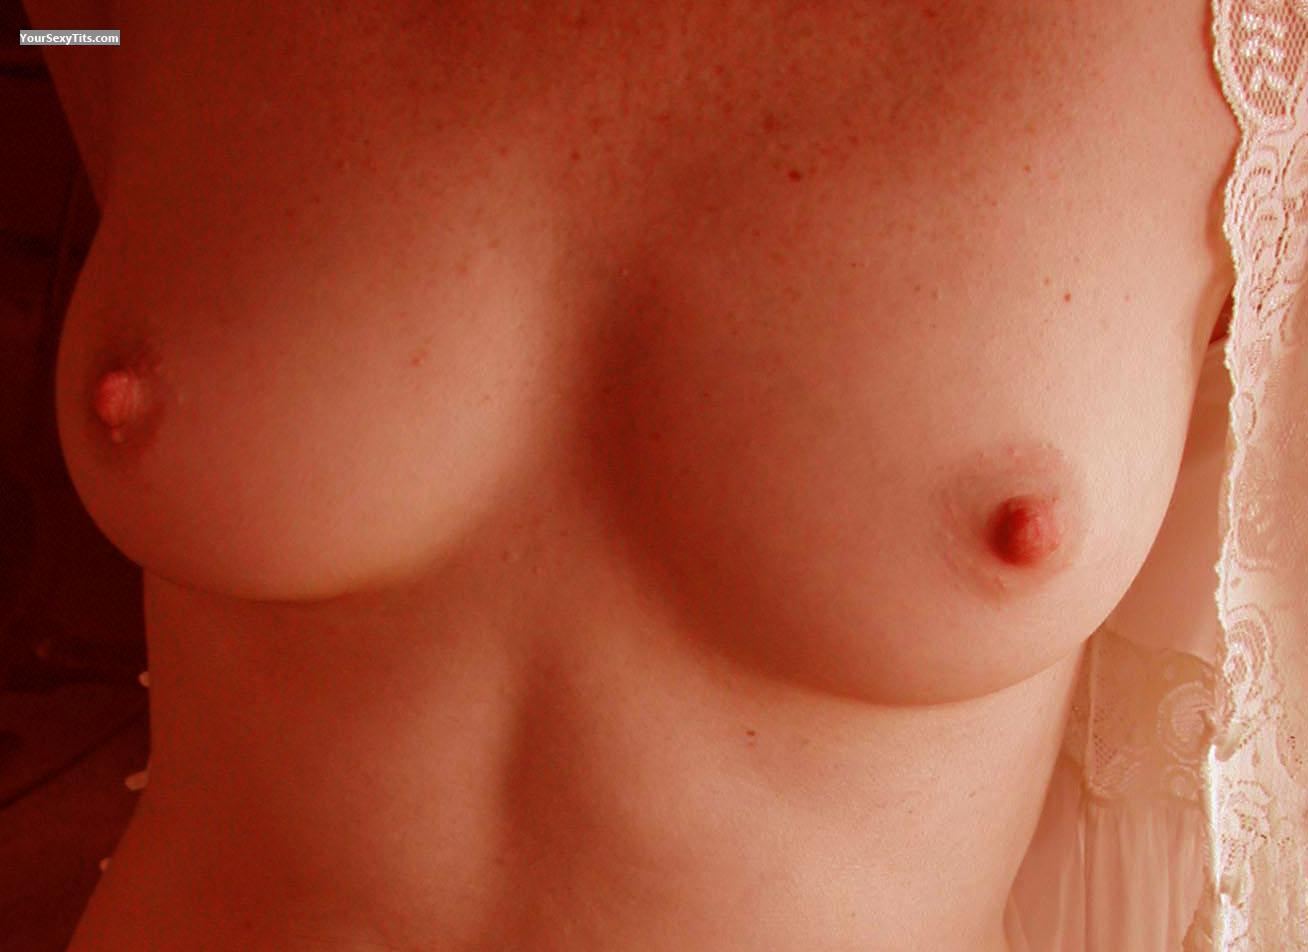 Medium Tits Of My Wife Kate